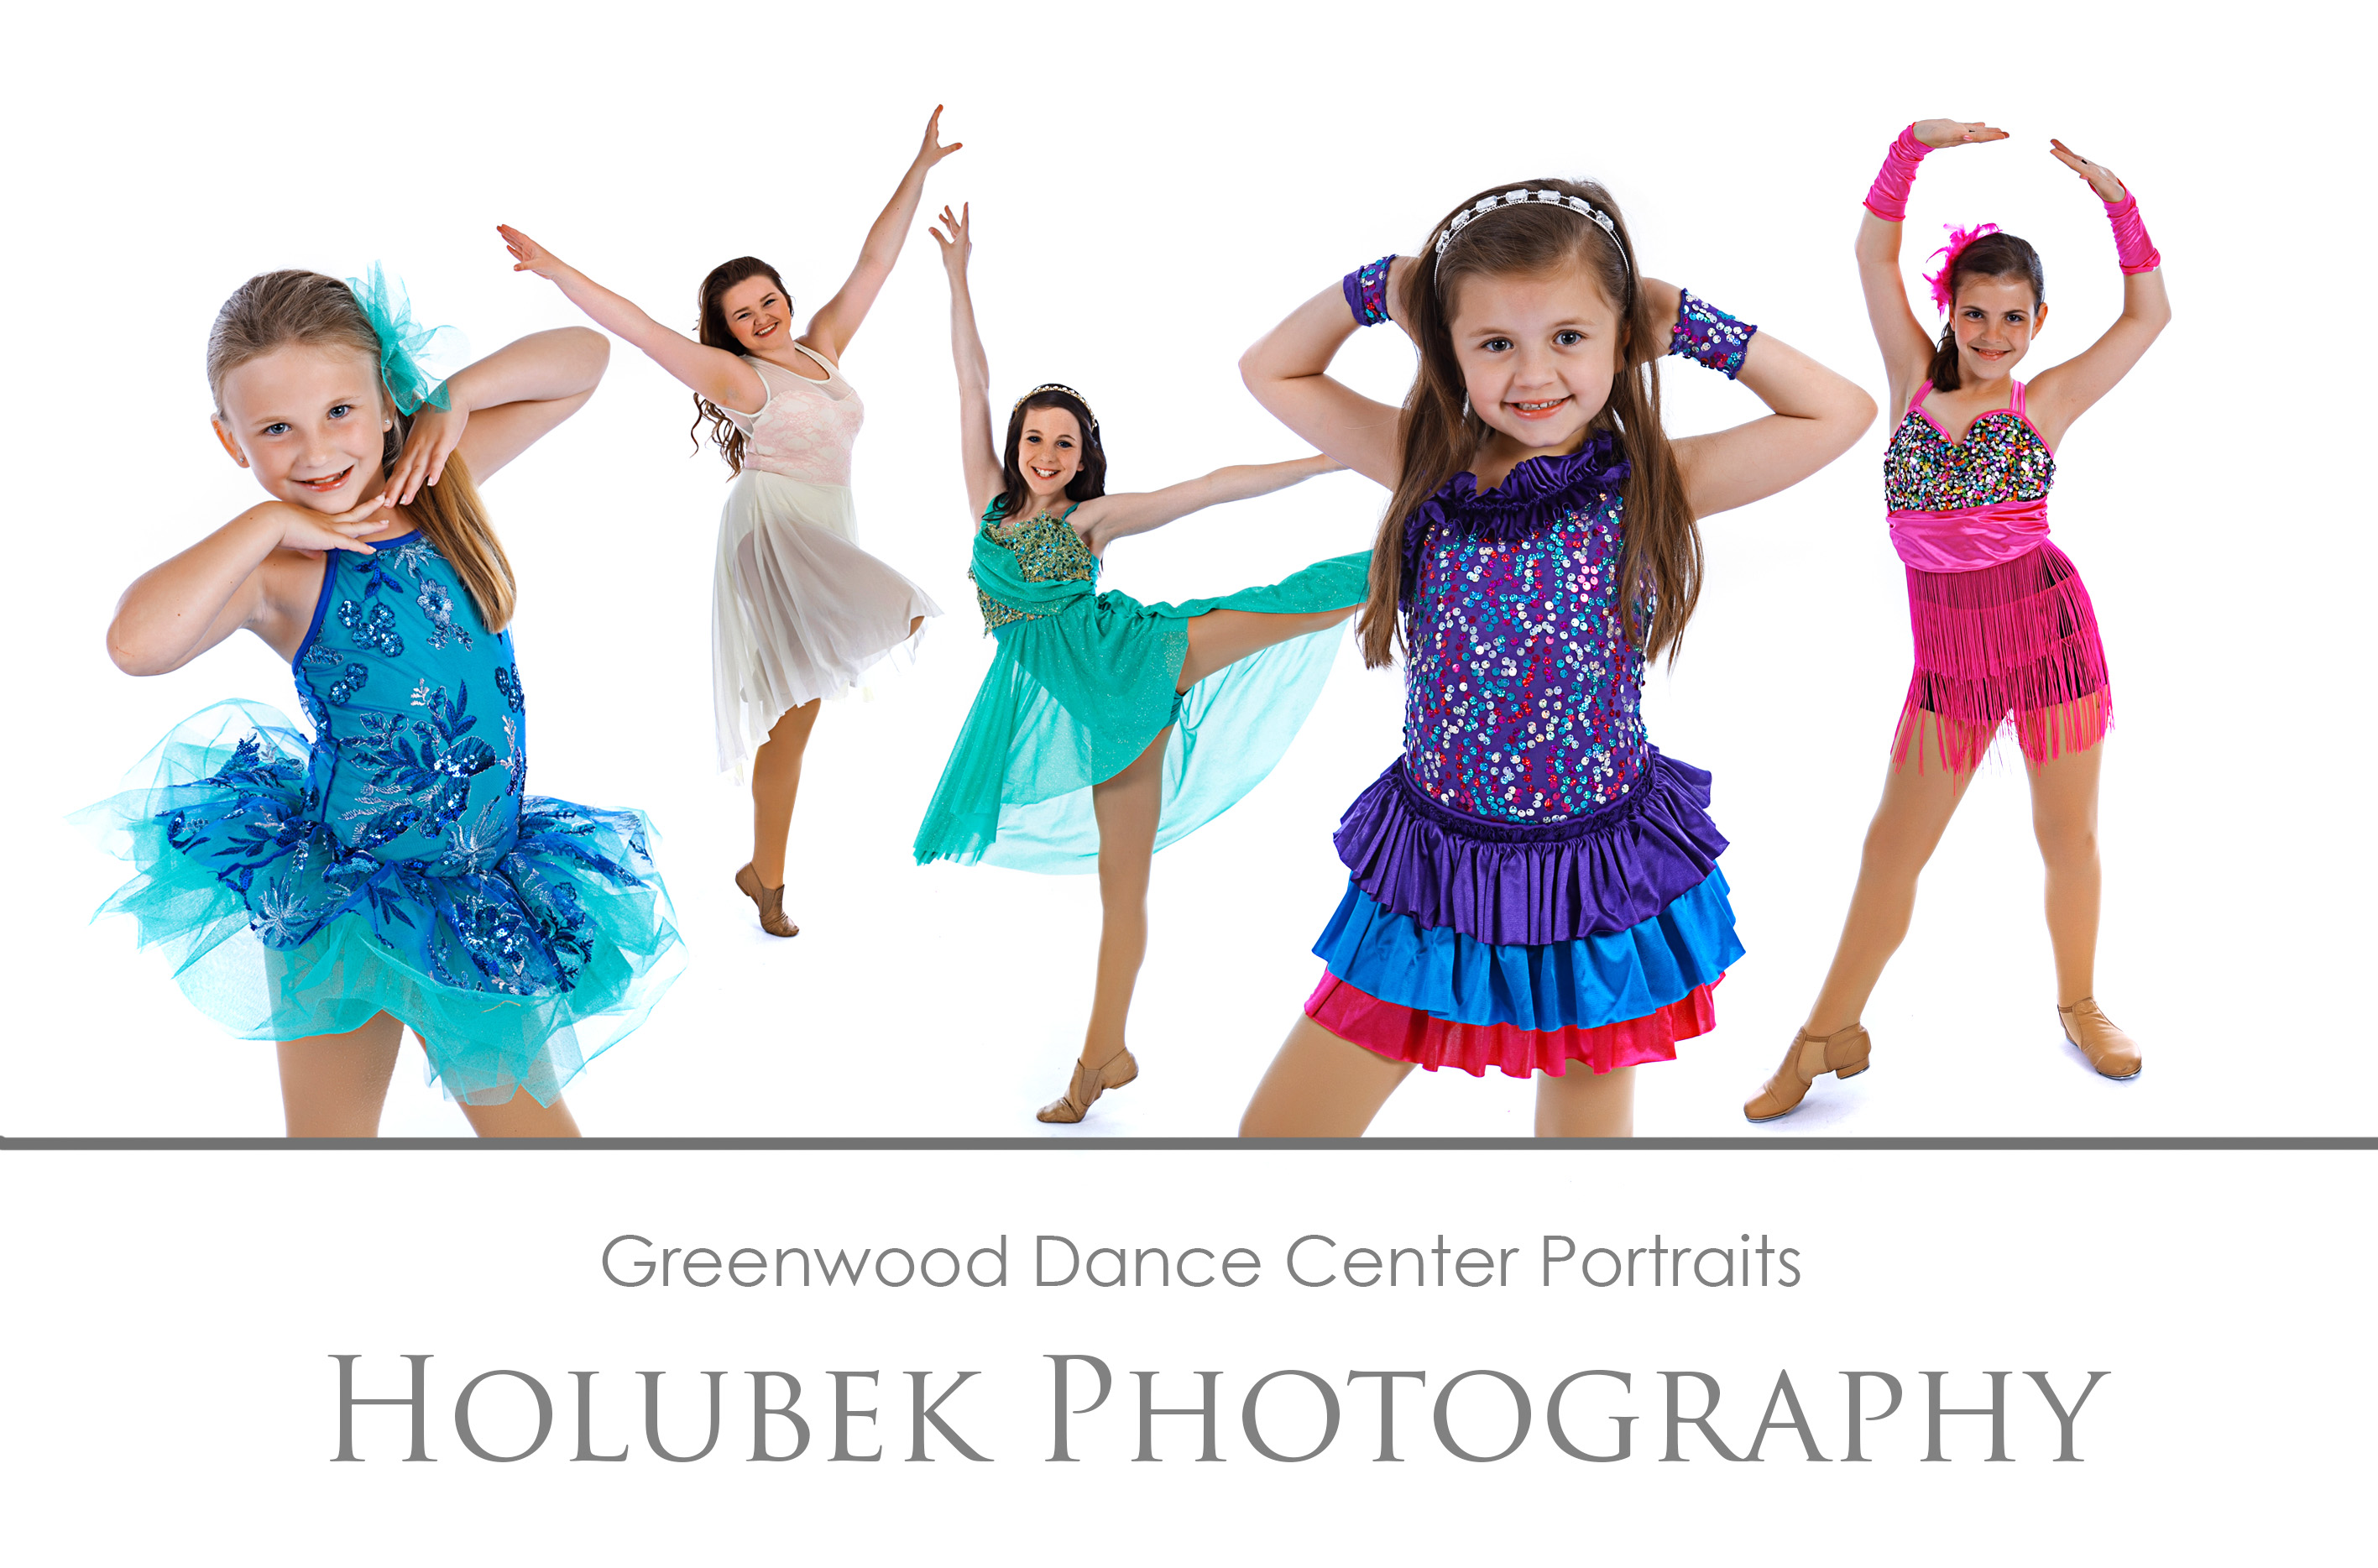 Fusion Greenwood Sc >> Greenwood Dance Center Portraits by Holubek Photography